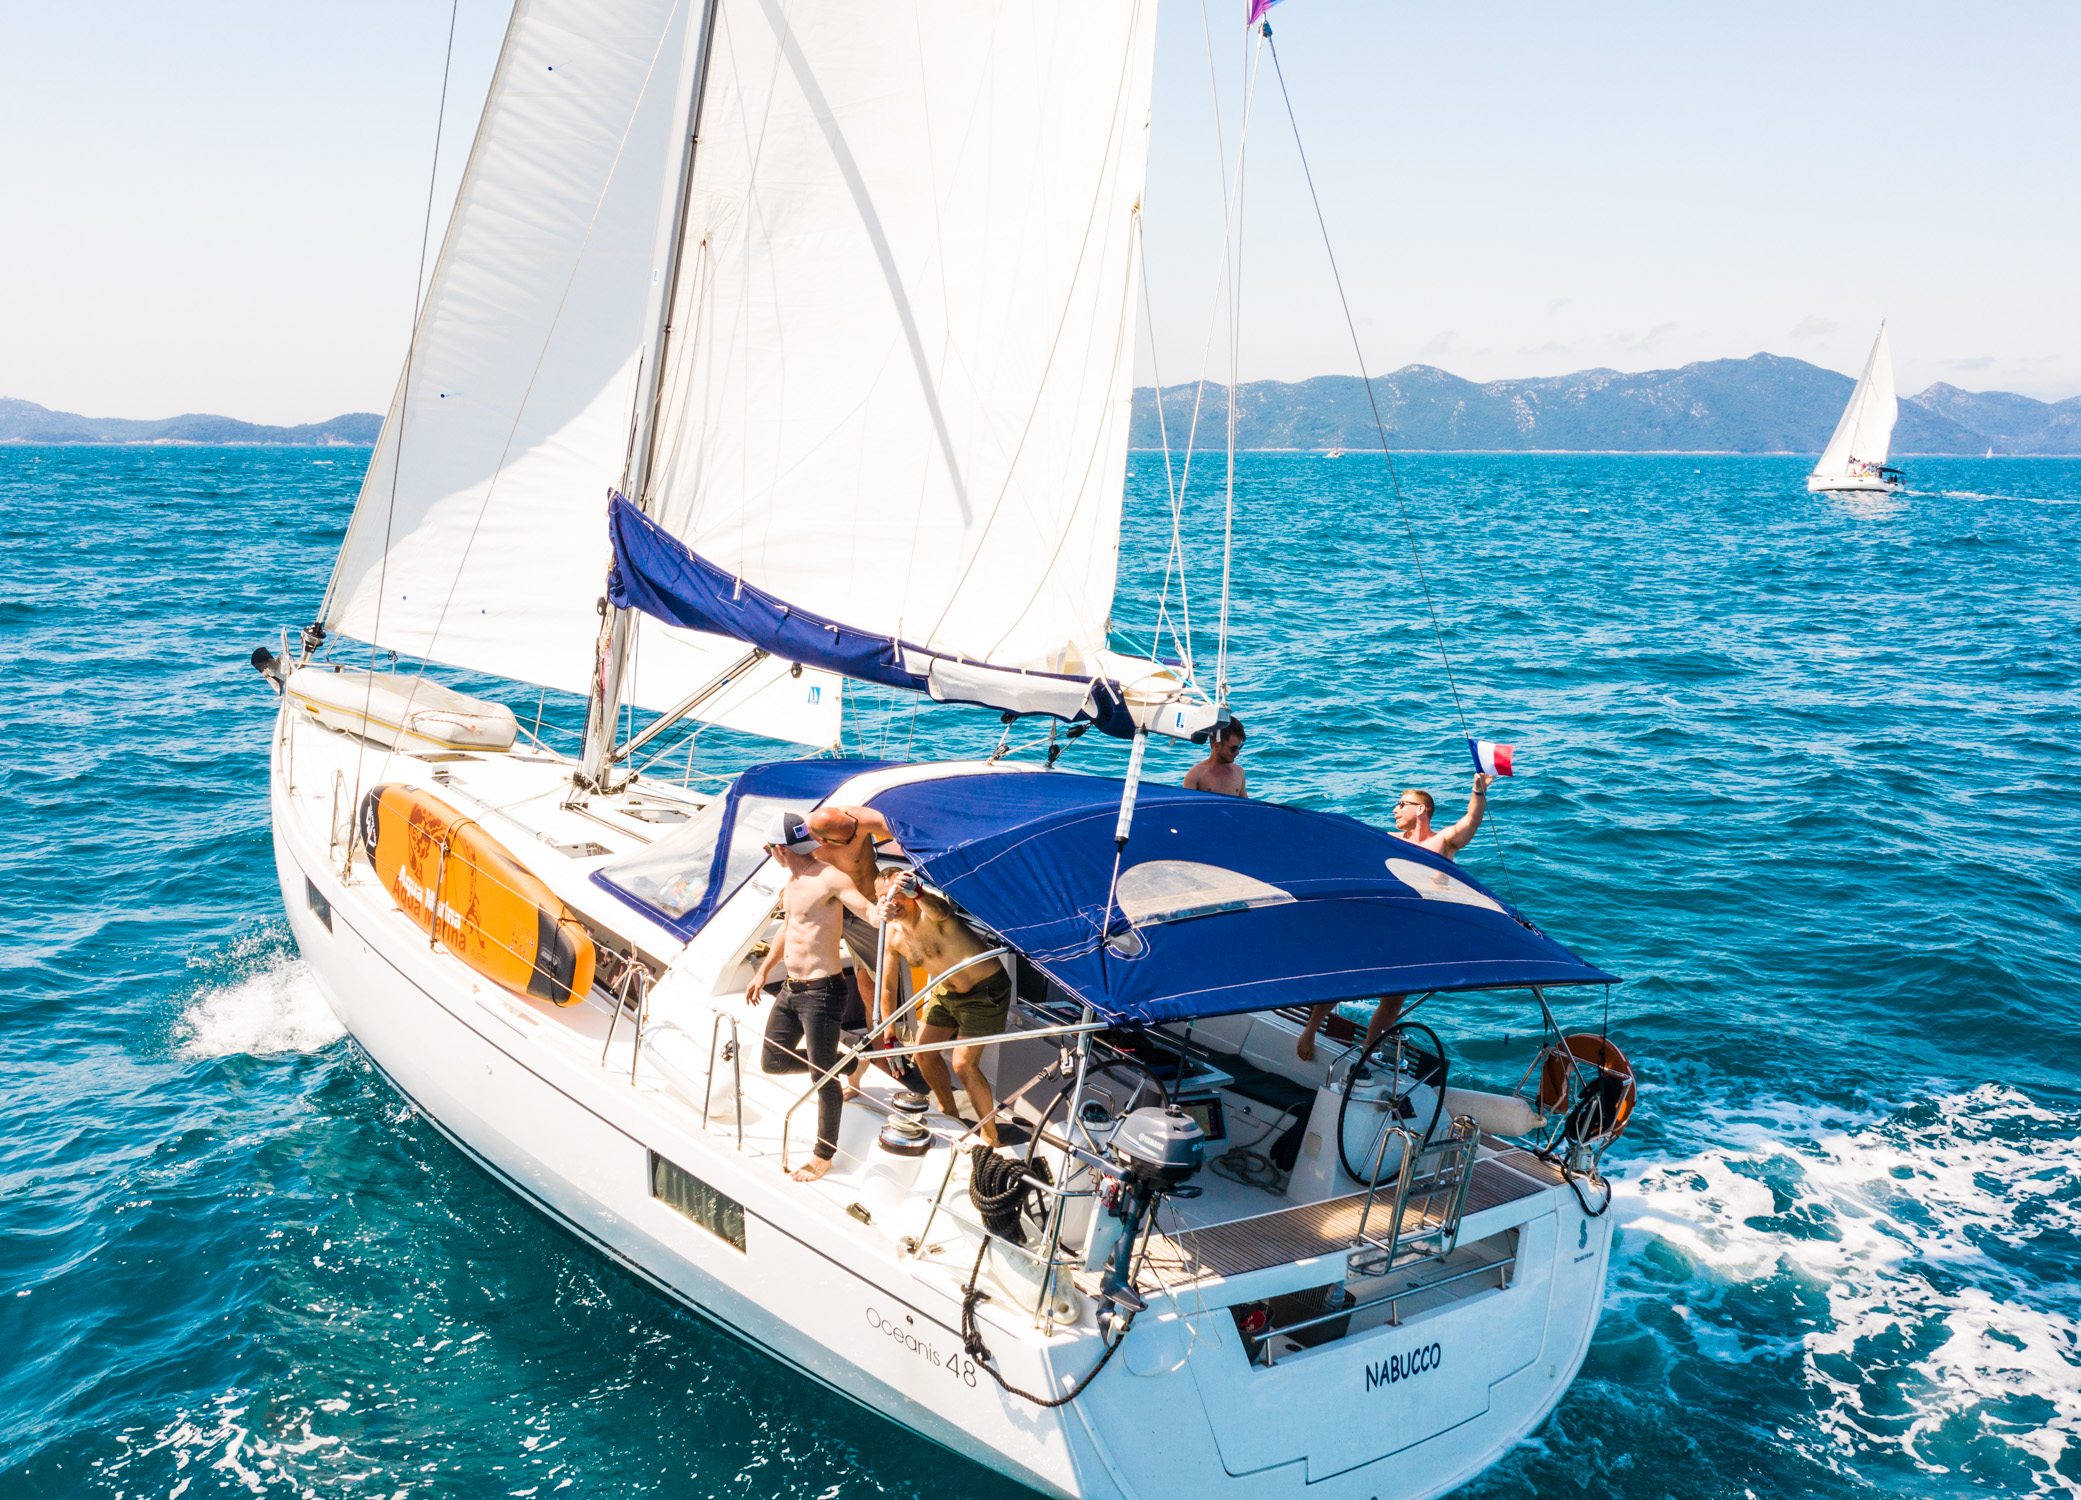 Oceanis 48 (Nabucco. Private Charter (8 pax) FULLY CREWED, ALL EXPENSES INCLUDED)  - 6